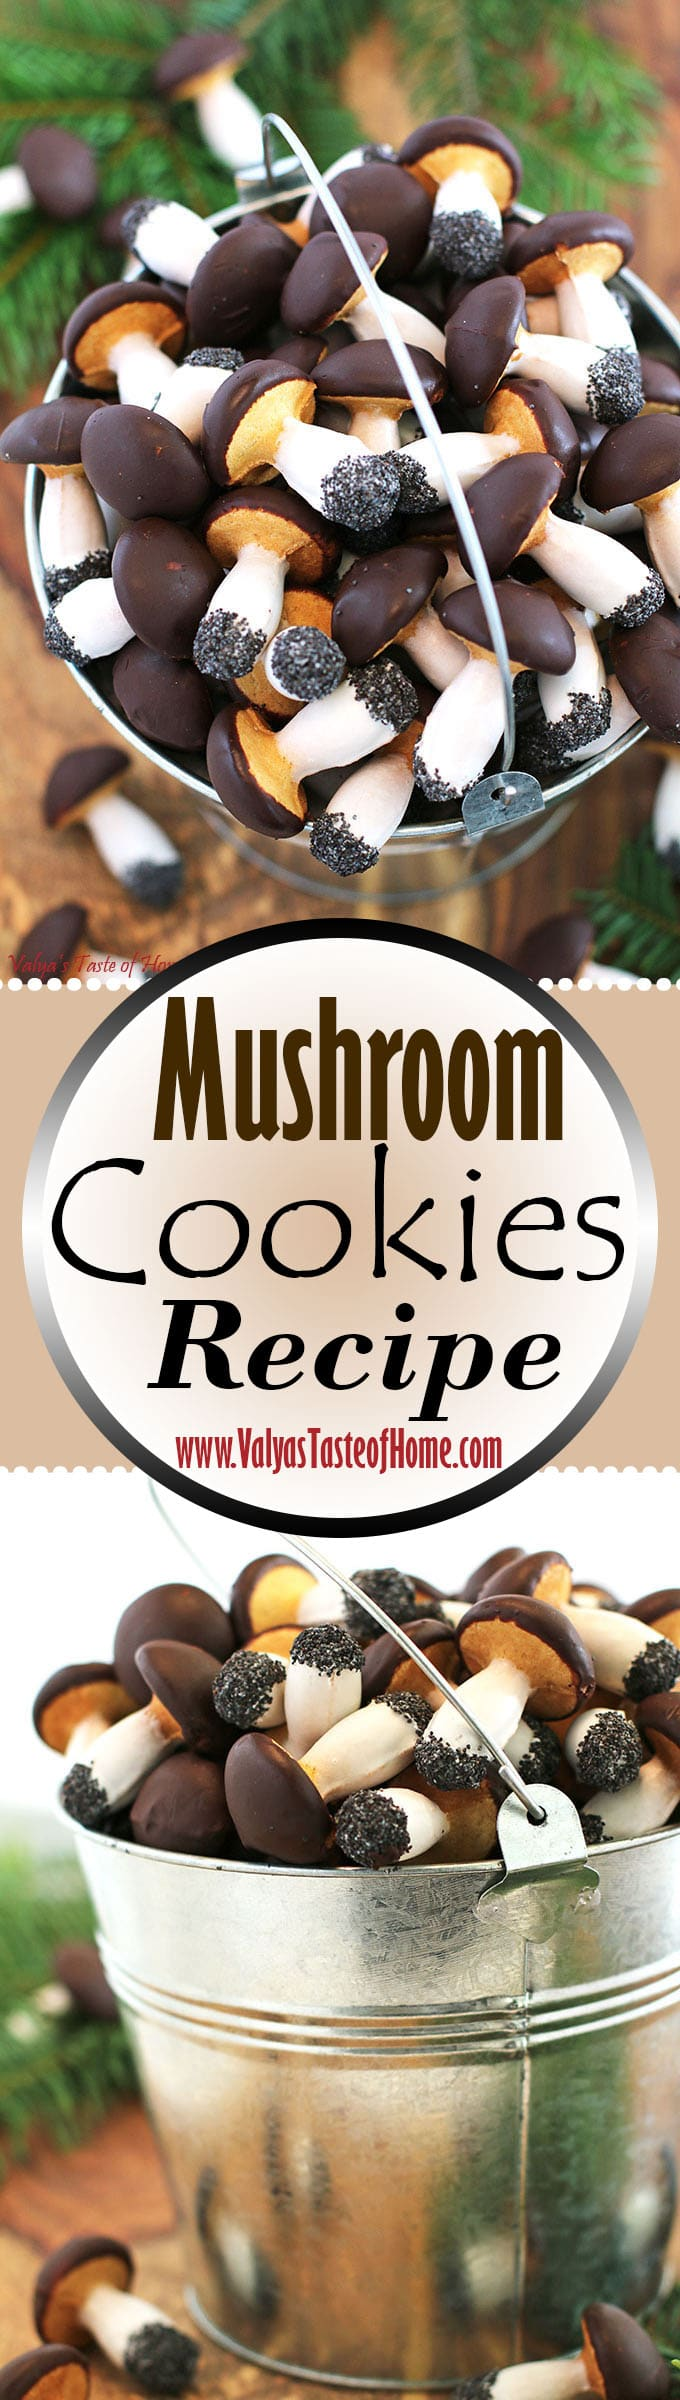 baked mushrooms cookies, beautiful dessert, butter, Christmas cookies, cocoa chocolate chips ganache, decor cookies, decor dessert, egg whites glaze, fall baking, home eggs, Mushroom Cookies Recipe, organic flour, organic sugar, poppy seeds